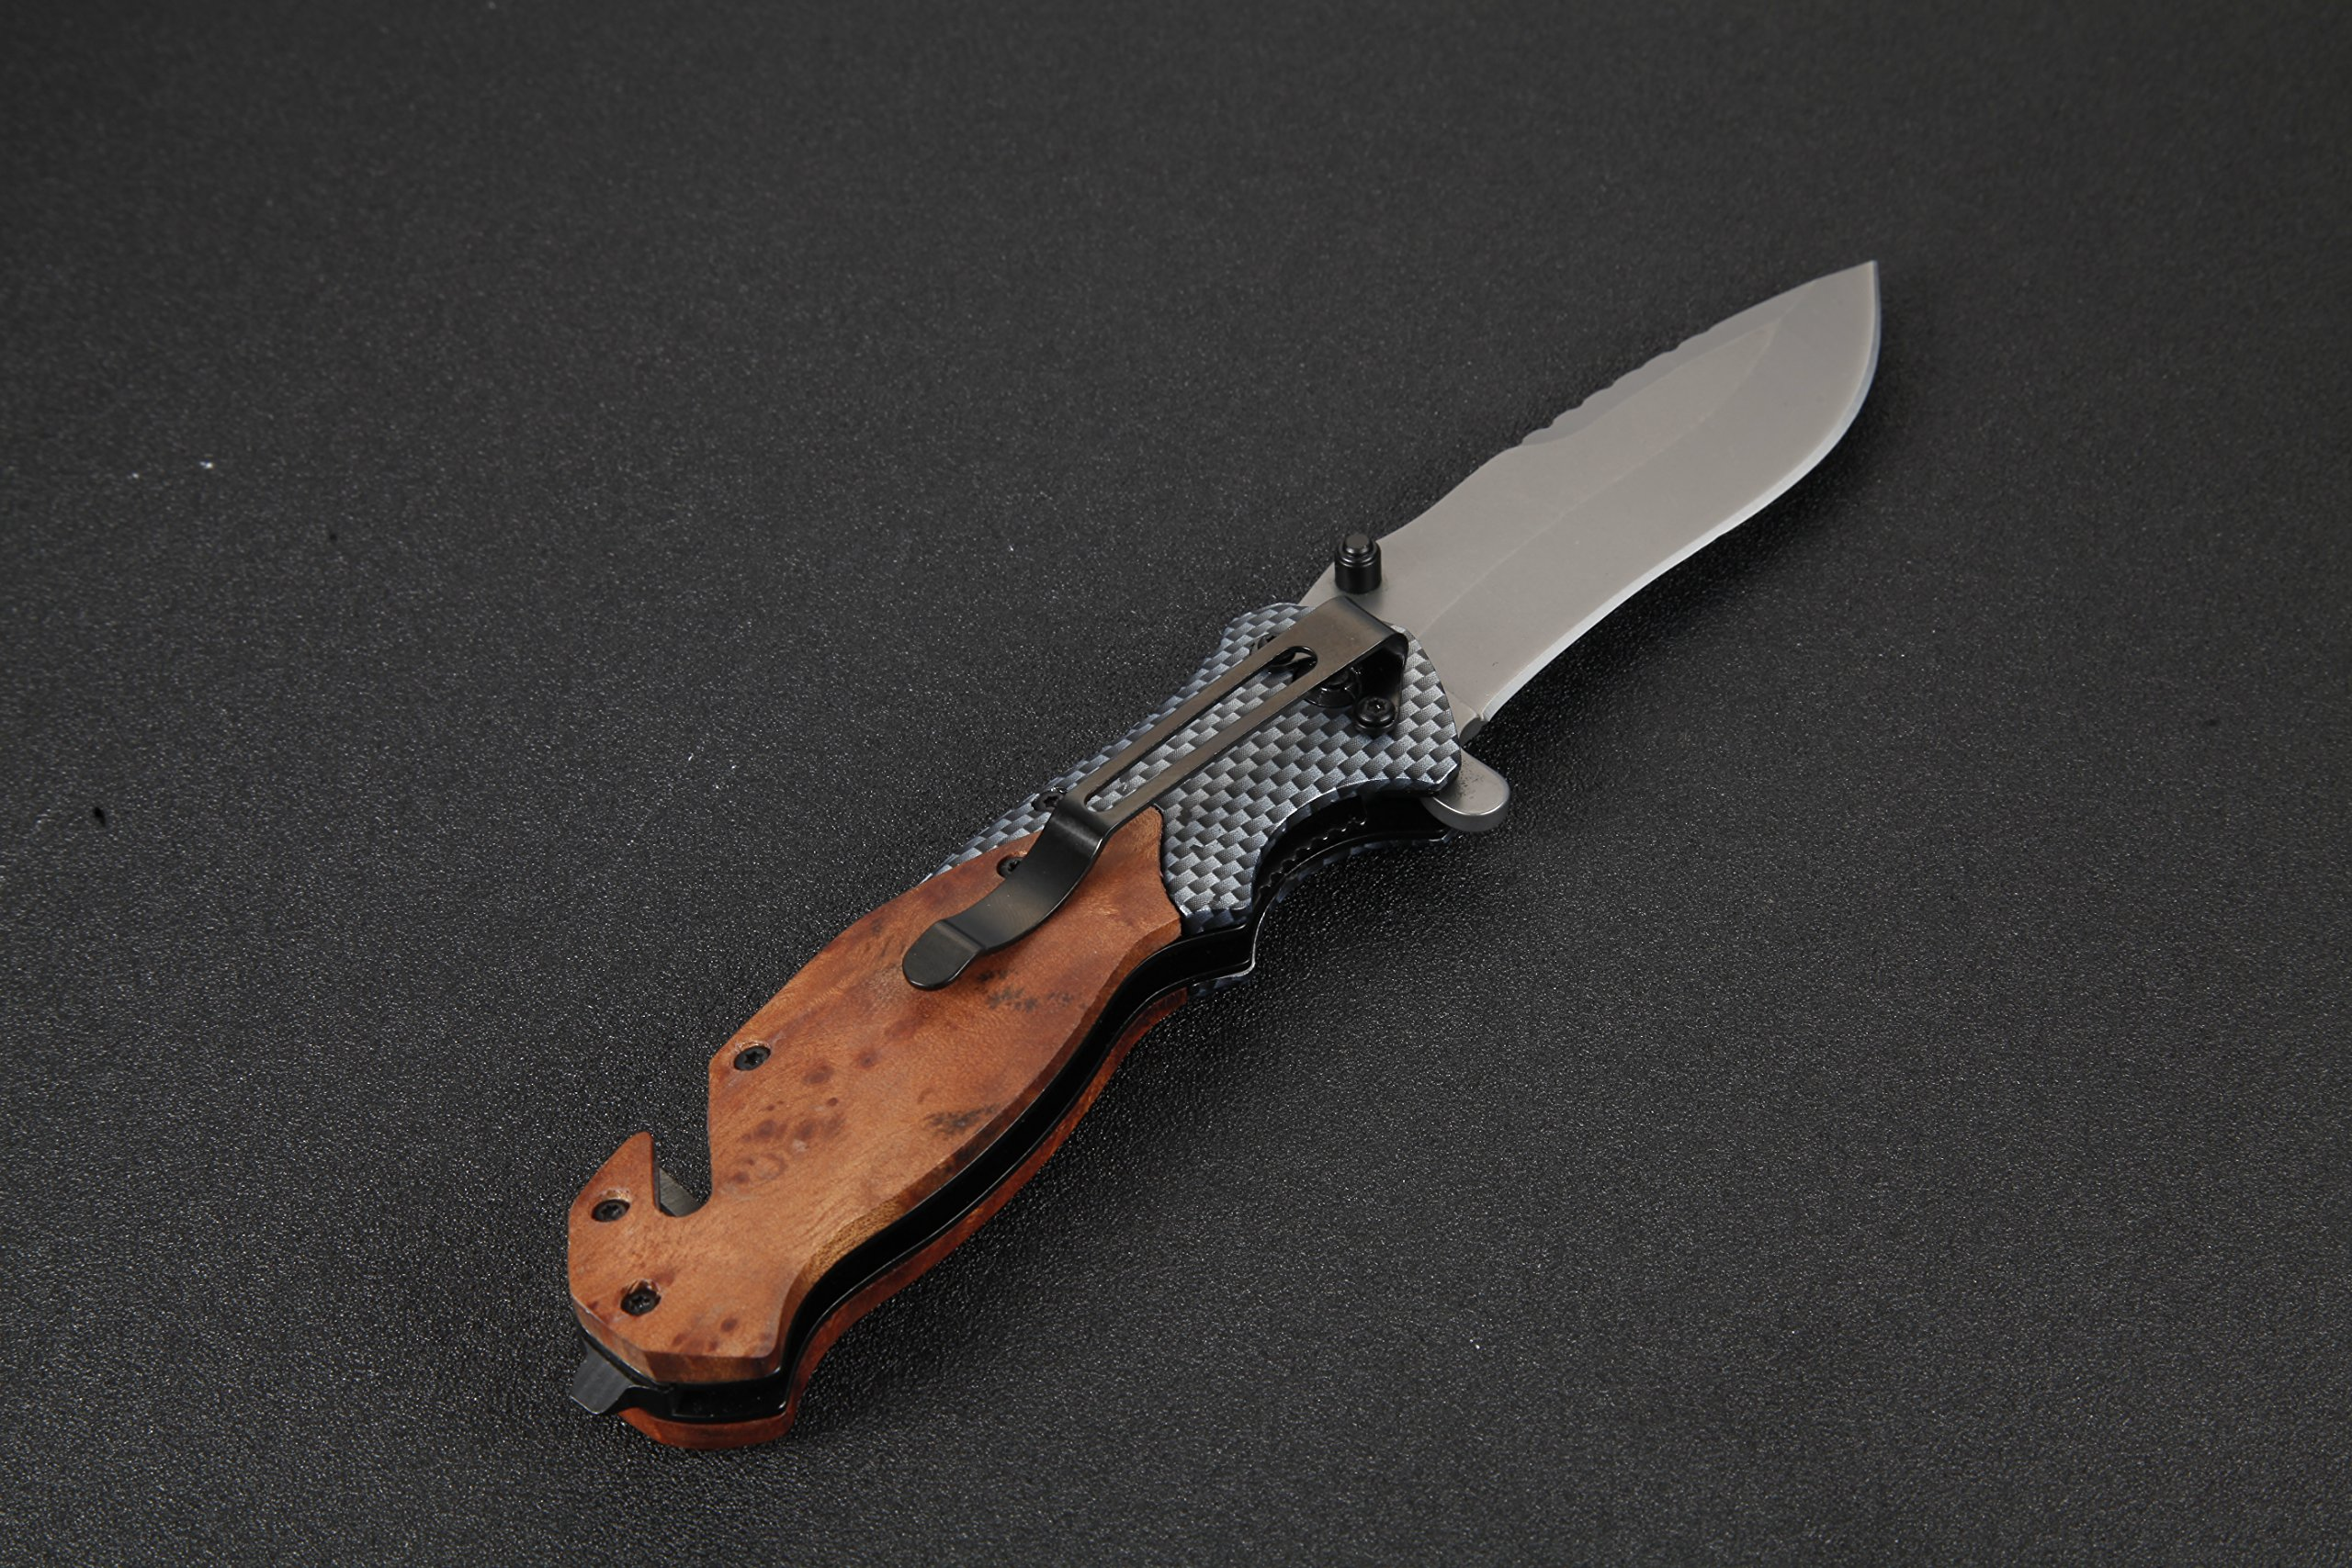 Jeslon Spring Assisted Opening Tactical Folding Pocket Knife, Wood Handle 440C 57HRC Blade Good for Camping Survival and outdoor Activities. by Jeslon (Image #3)